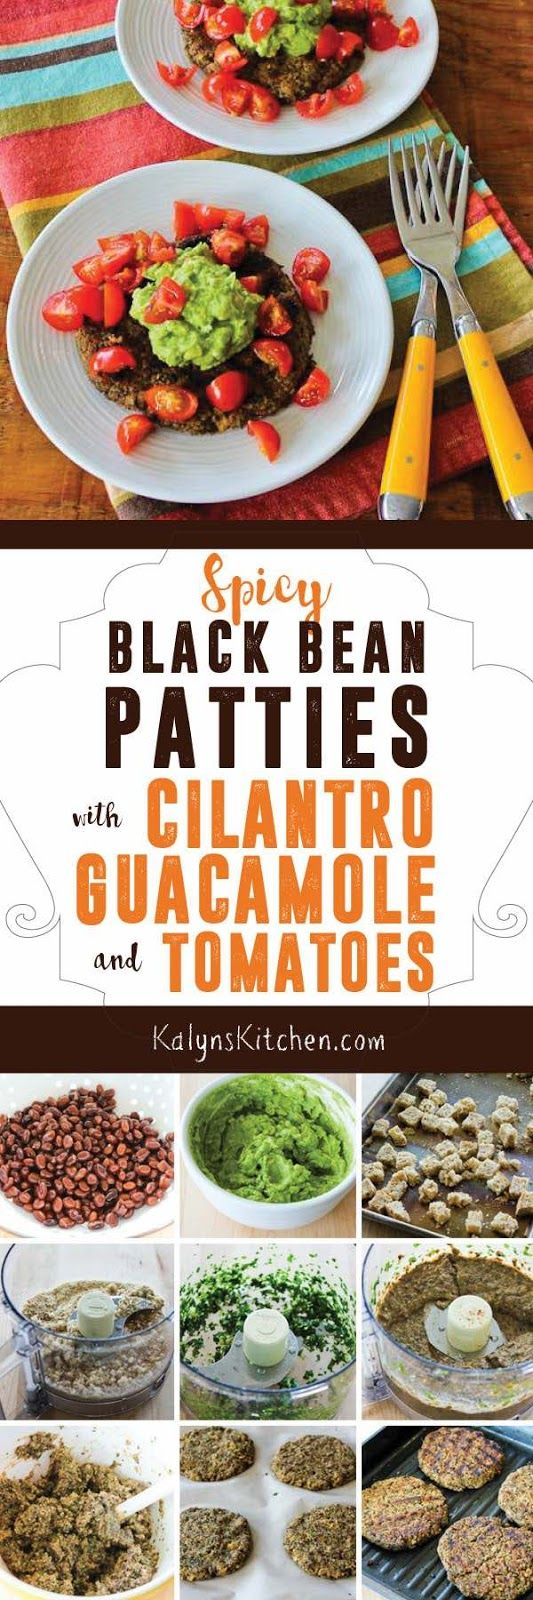 These Spicy Black Bean Patties with Cilantro, Guacamole, and Tomatoes make a perfect Meatless Monday dinner! [found on KalynsKitchen.com]